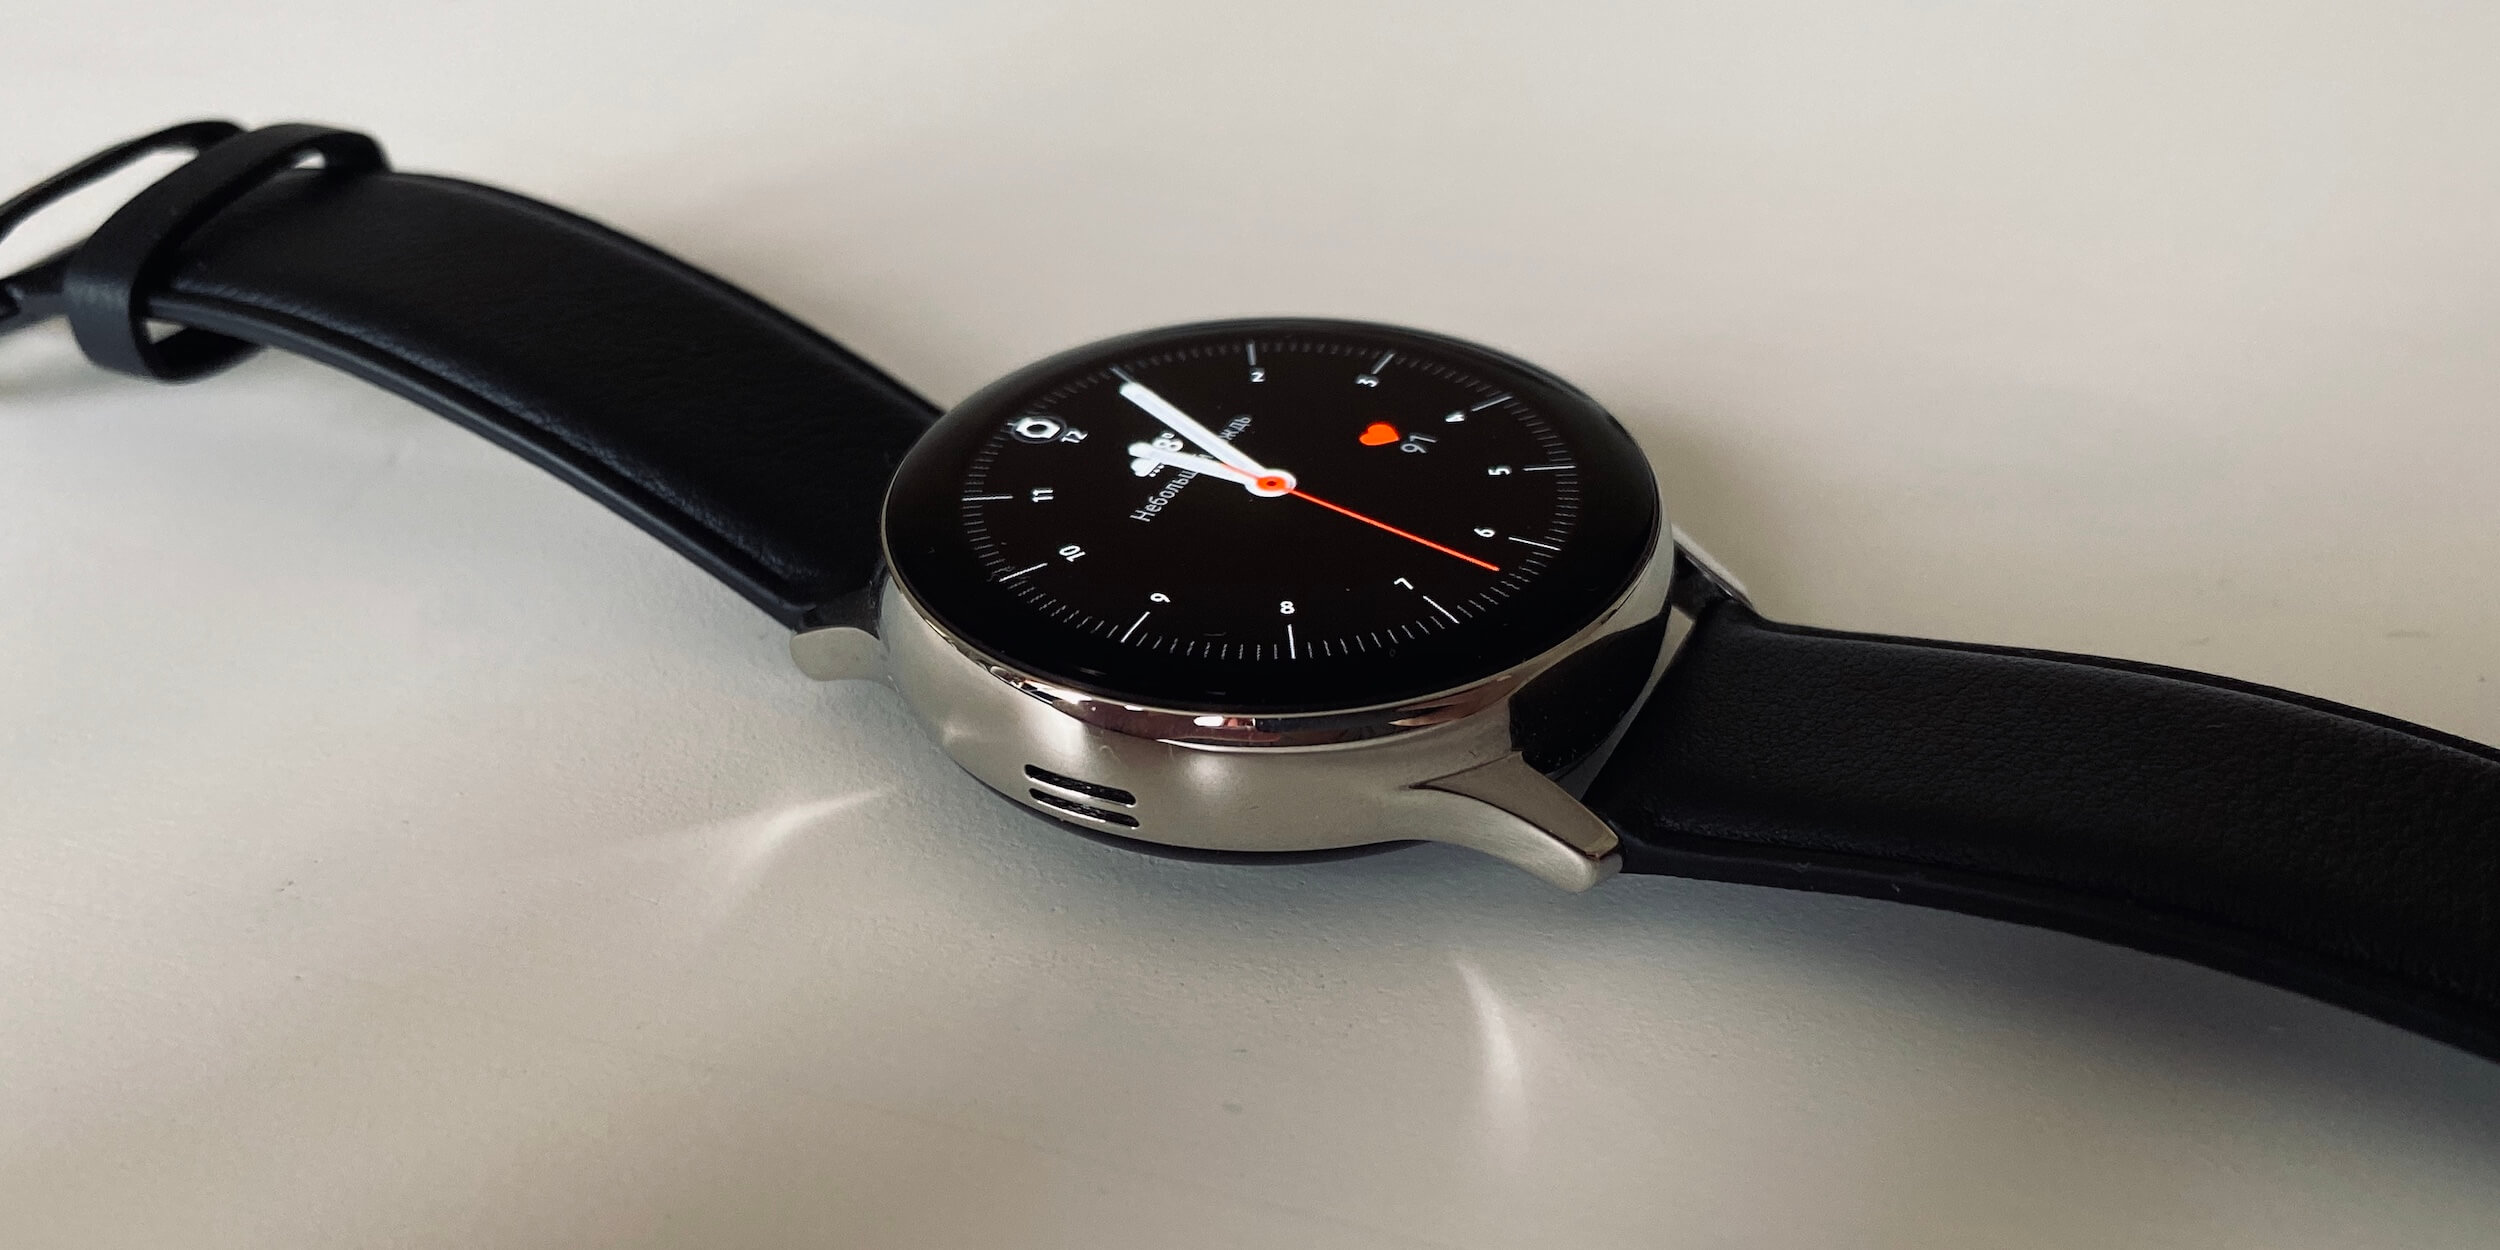 Samsung Galaxy Watch Active 2: Стальная версия